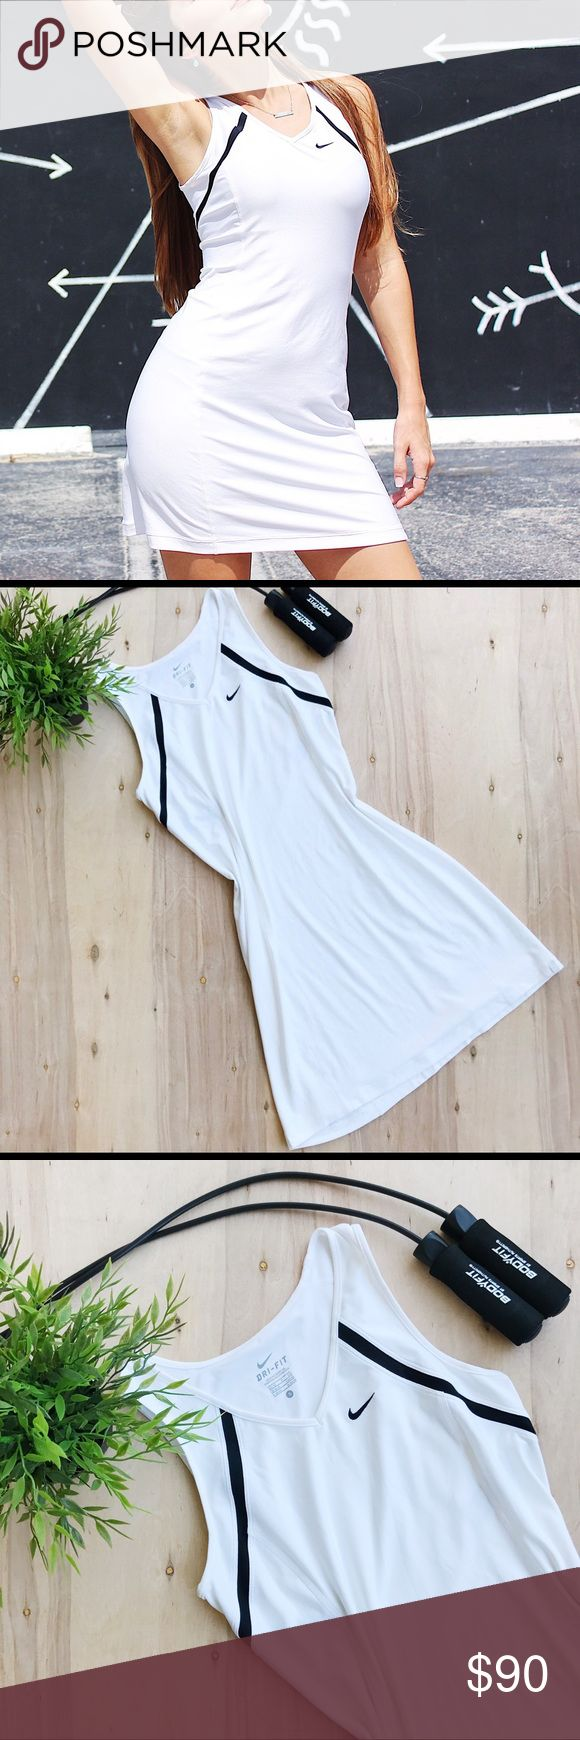 Nike dri fit tennis dress White Nike dress with black stripe embellishment on bust area. Dri - fit material. Breathable and quick drying. Size: Small  ▪️ All measurements are approximate and measured while garment is laid flat:  Armpit - armpit: 15 inches  Length: 32 inches. Nike Dresses Mini